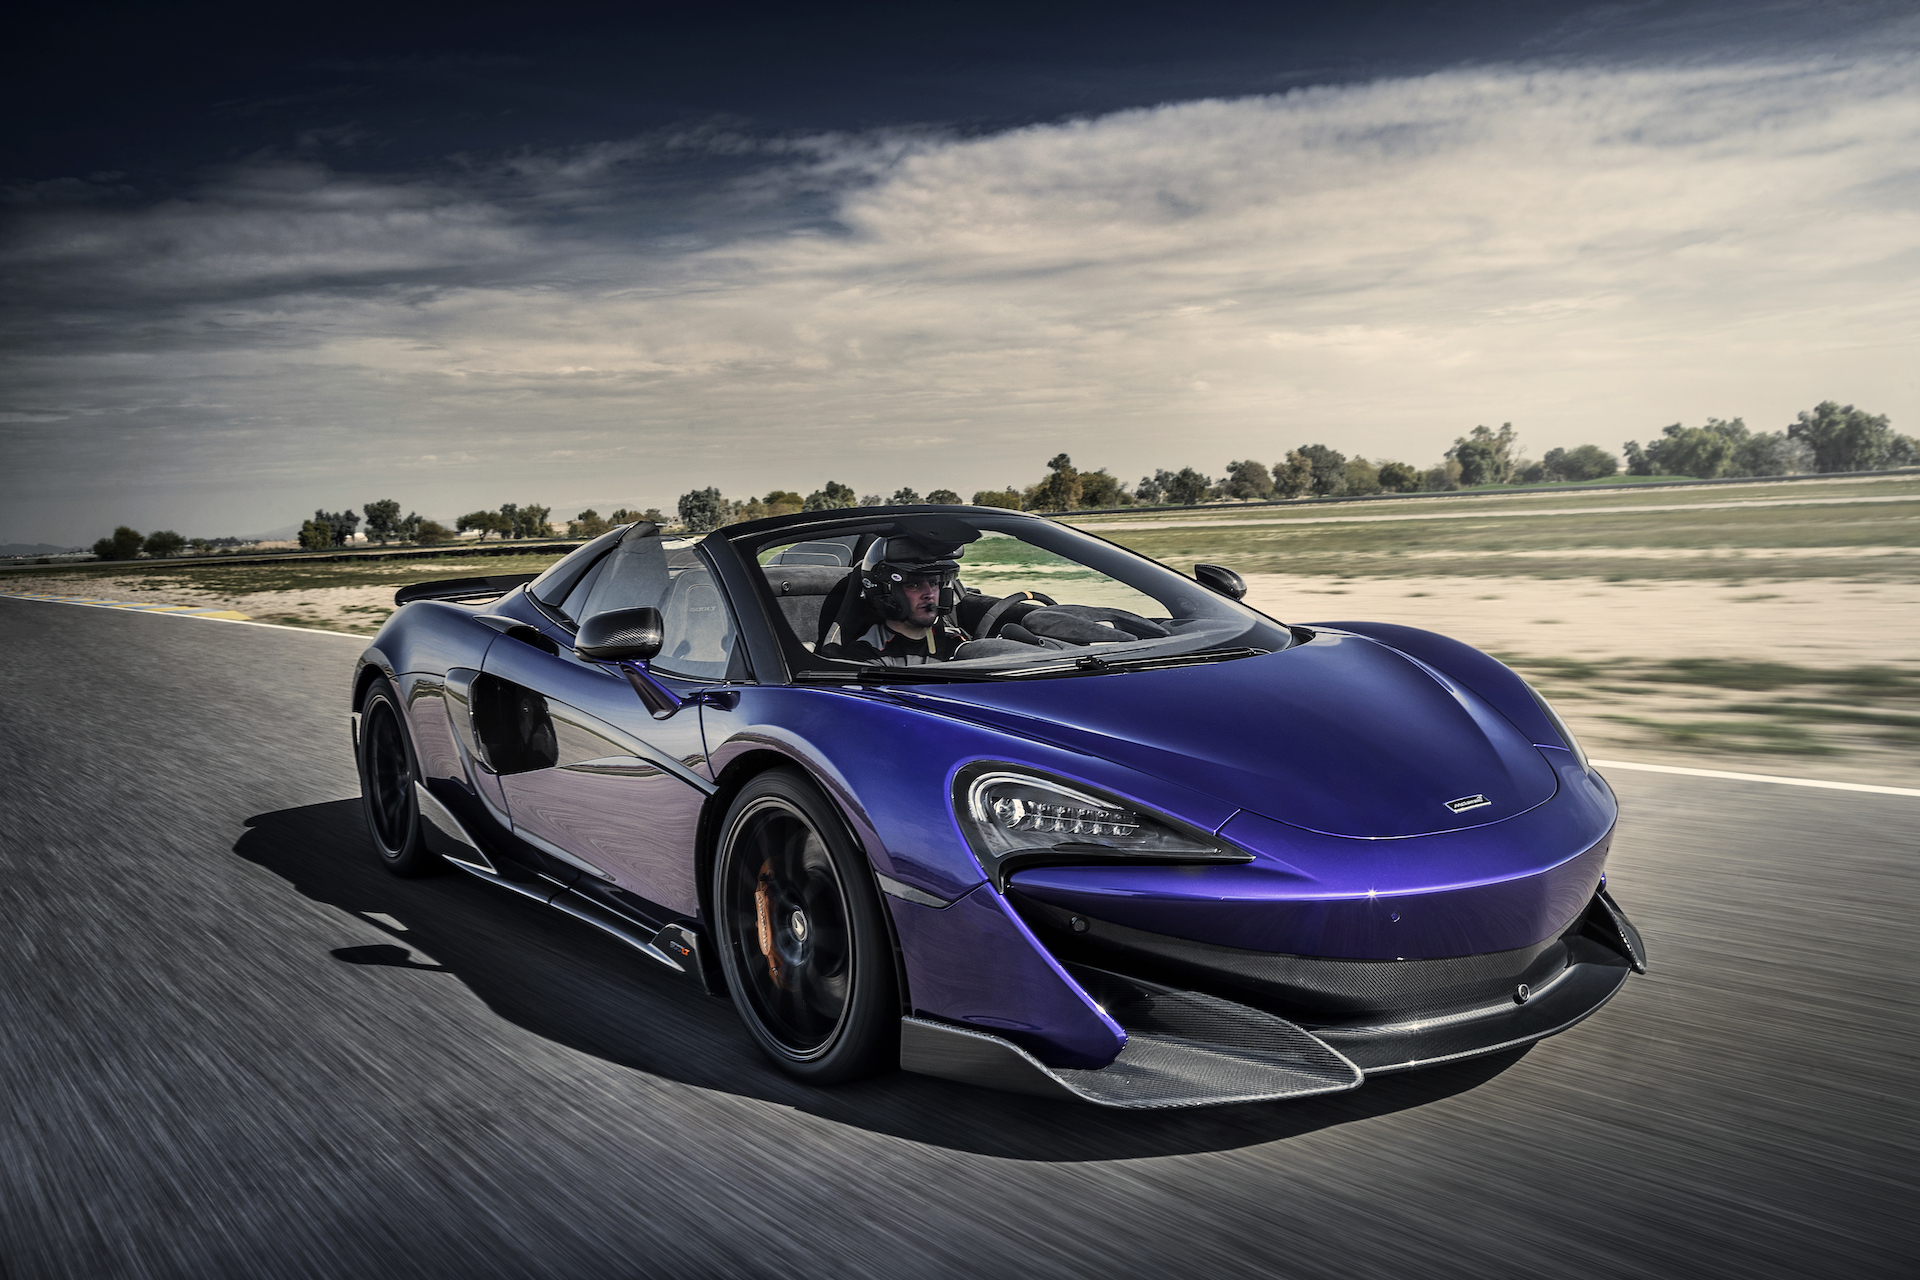 2020 McLaren 600LT Spider (Color: Lantana Purple) Front Three-Quarter Wallpaper (4)